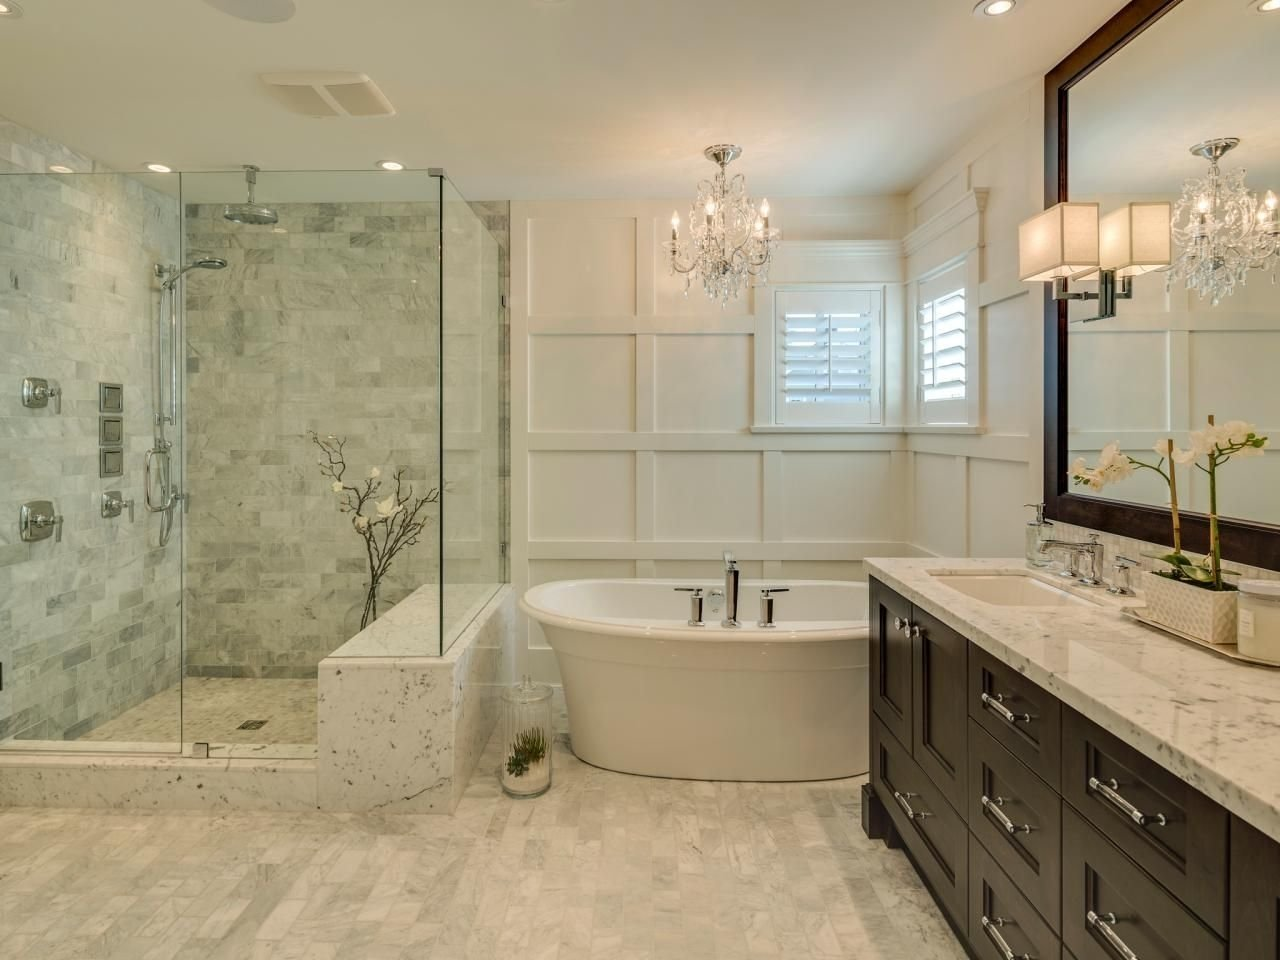 10 Most Recommended Master Bathroom Ideas Photo Gallery splurge or save 16 gorgeous bath updates for any budget budget 2020